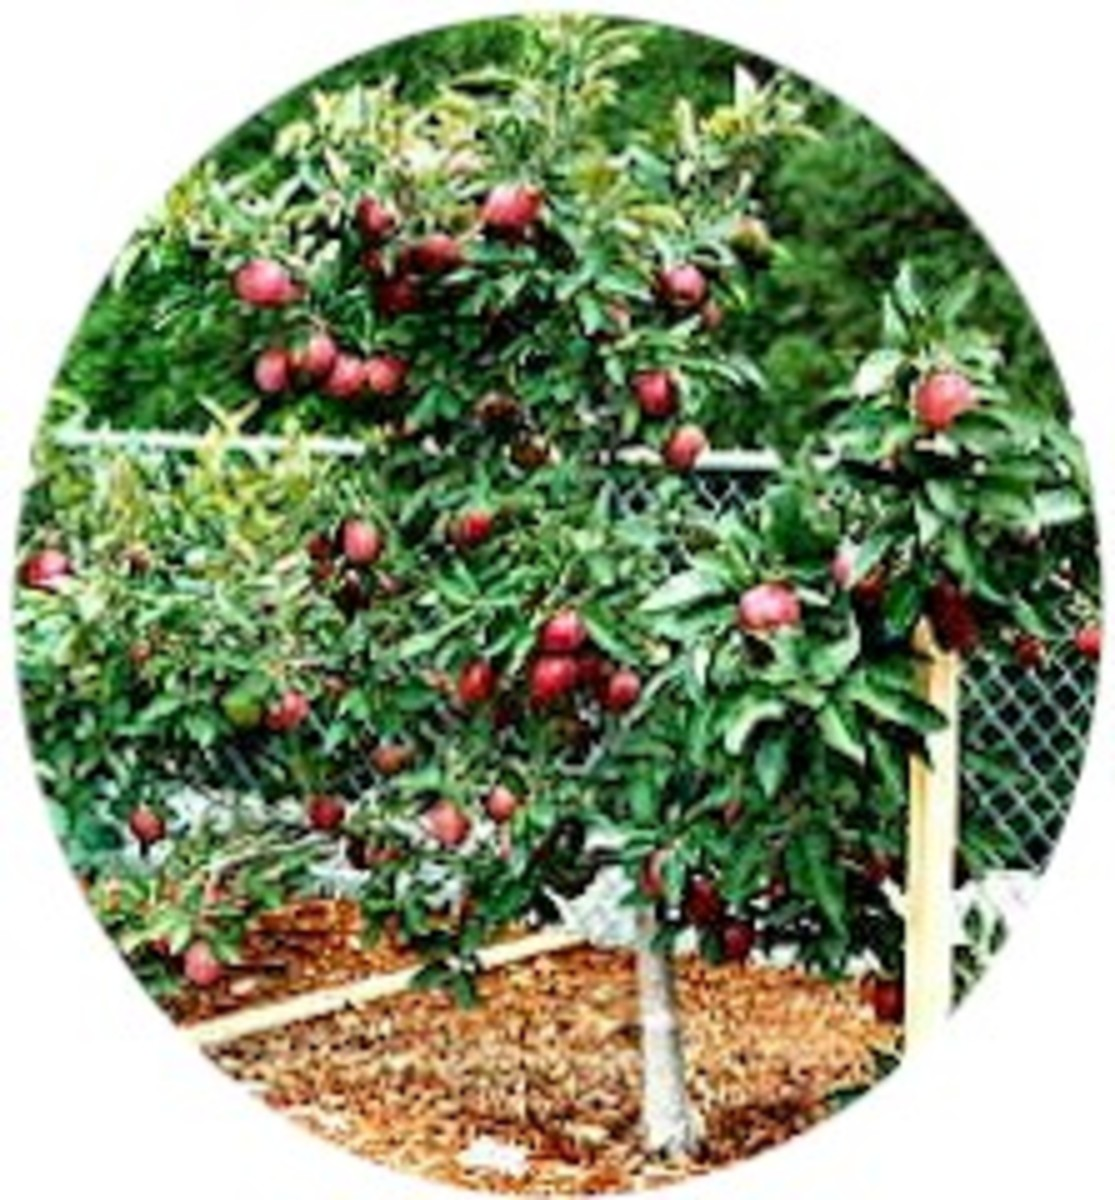 10 Tips on Growing Dwarf Fruit Trees